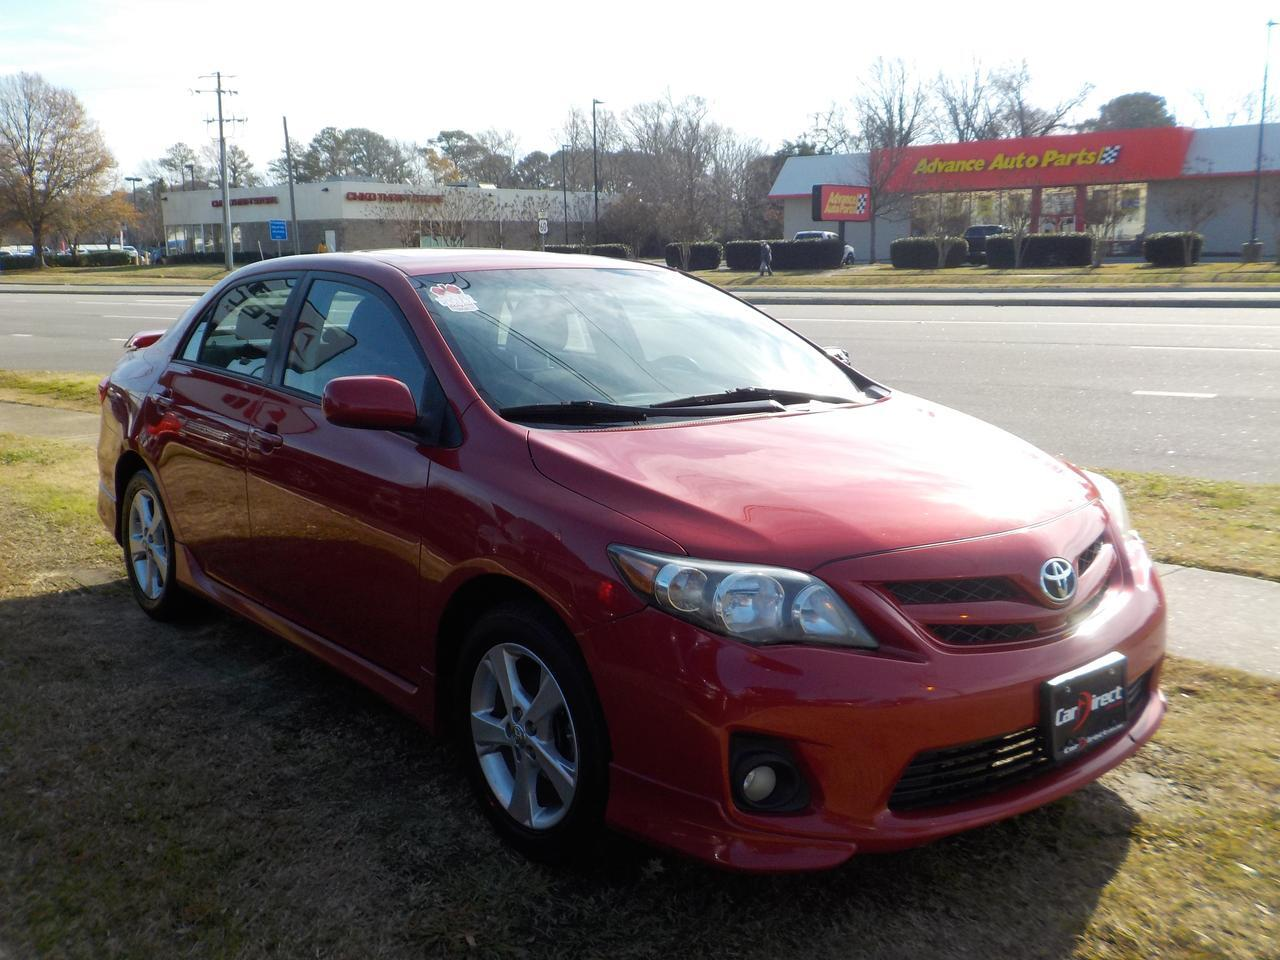 2011 TOYOTA COROLLA S, WARRANTY, SUNROOF, DAYTIME RUNNING LIGHTS, KEYLESS ENTRY!